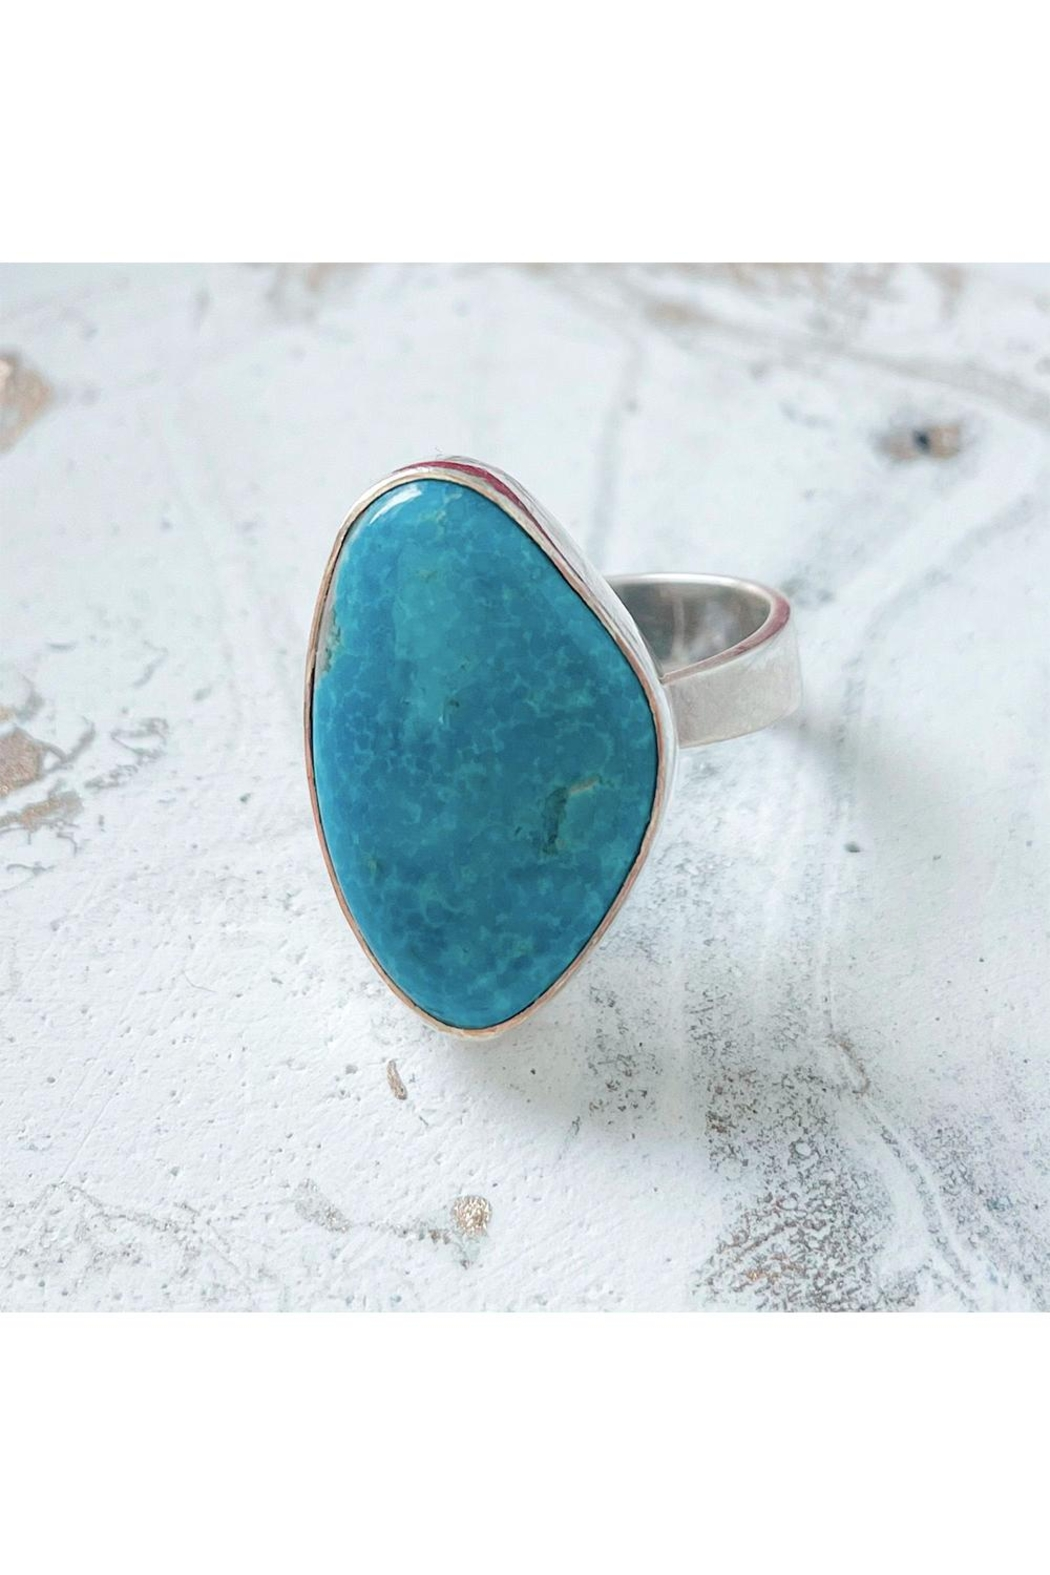 Lenore Jewelry Blue Agate Ring - Main Image